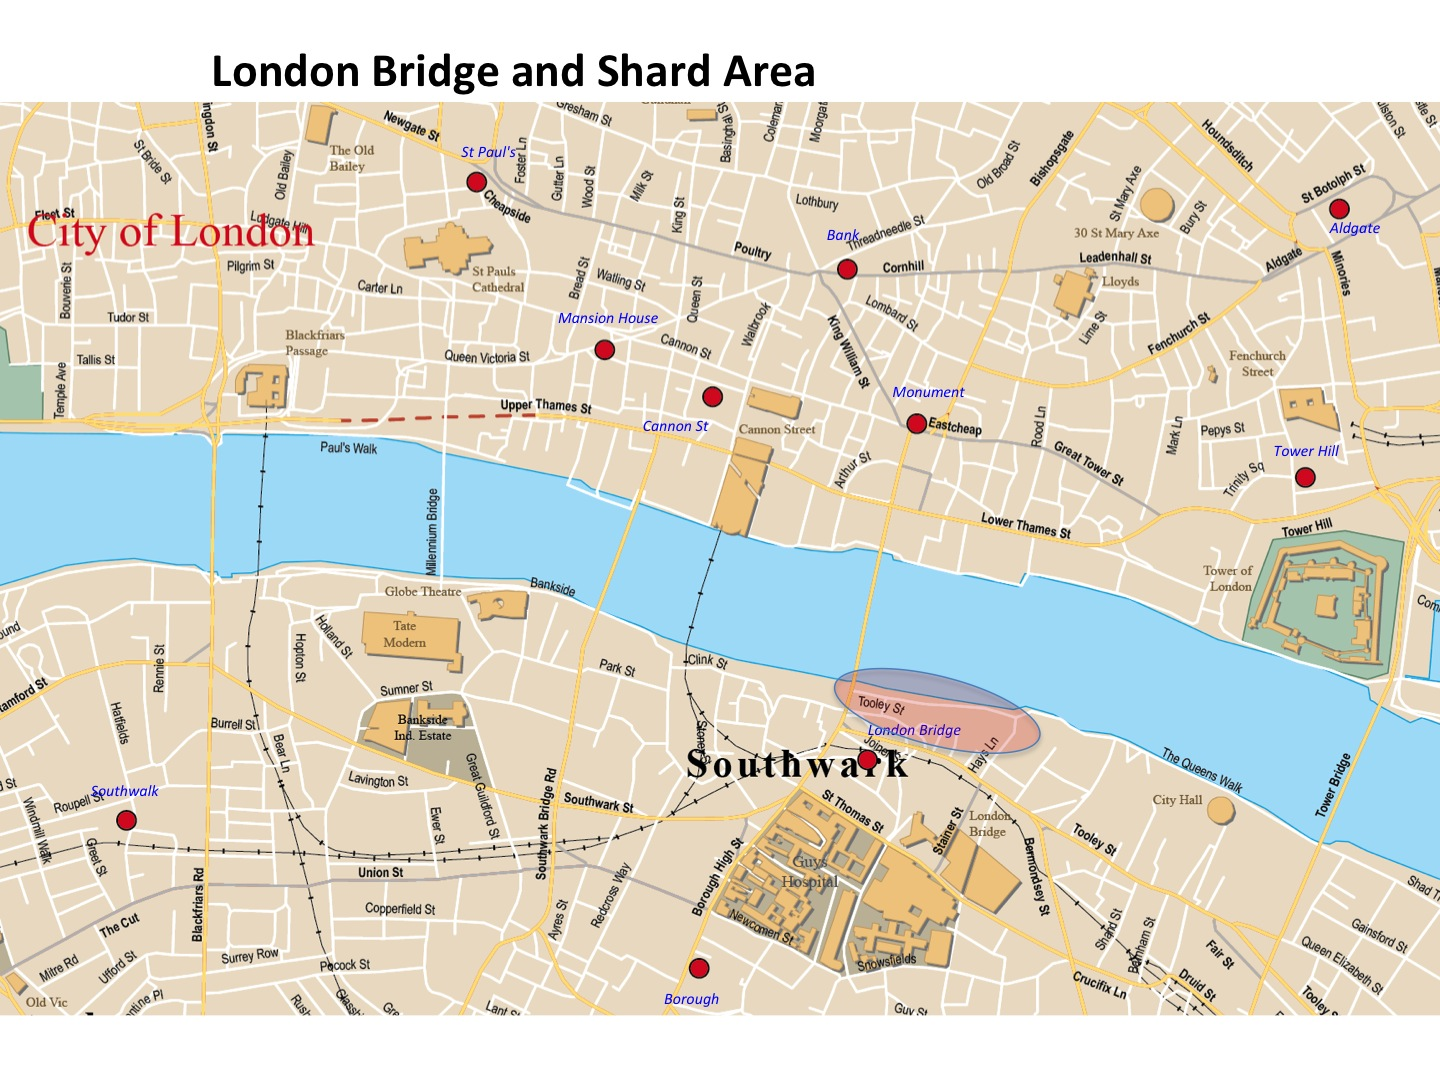 London Bridge Map.Map London Bridge And The Shard Building London Photo Areas And Routes